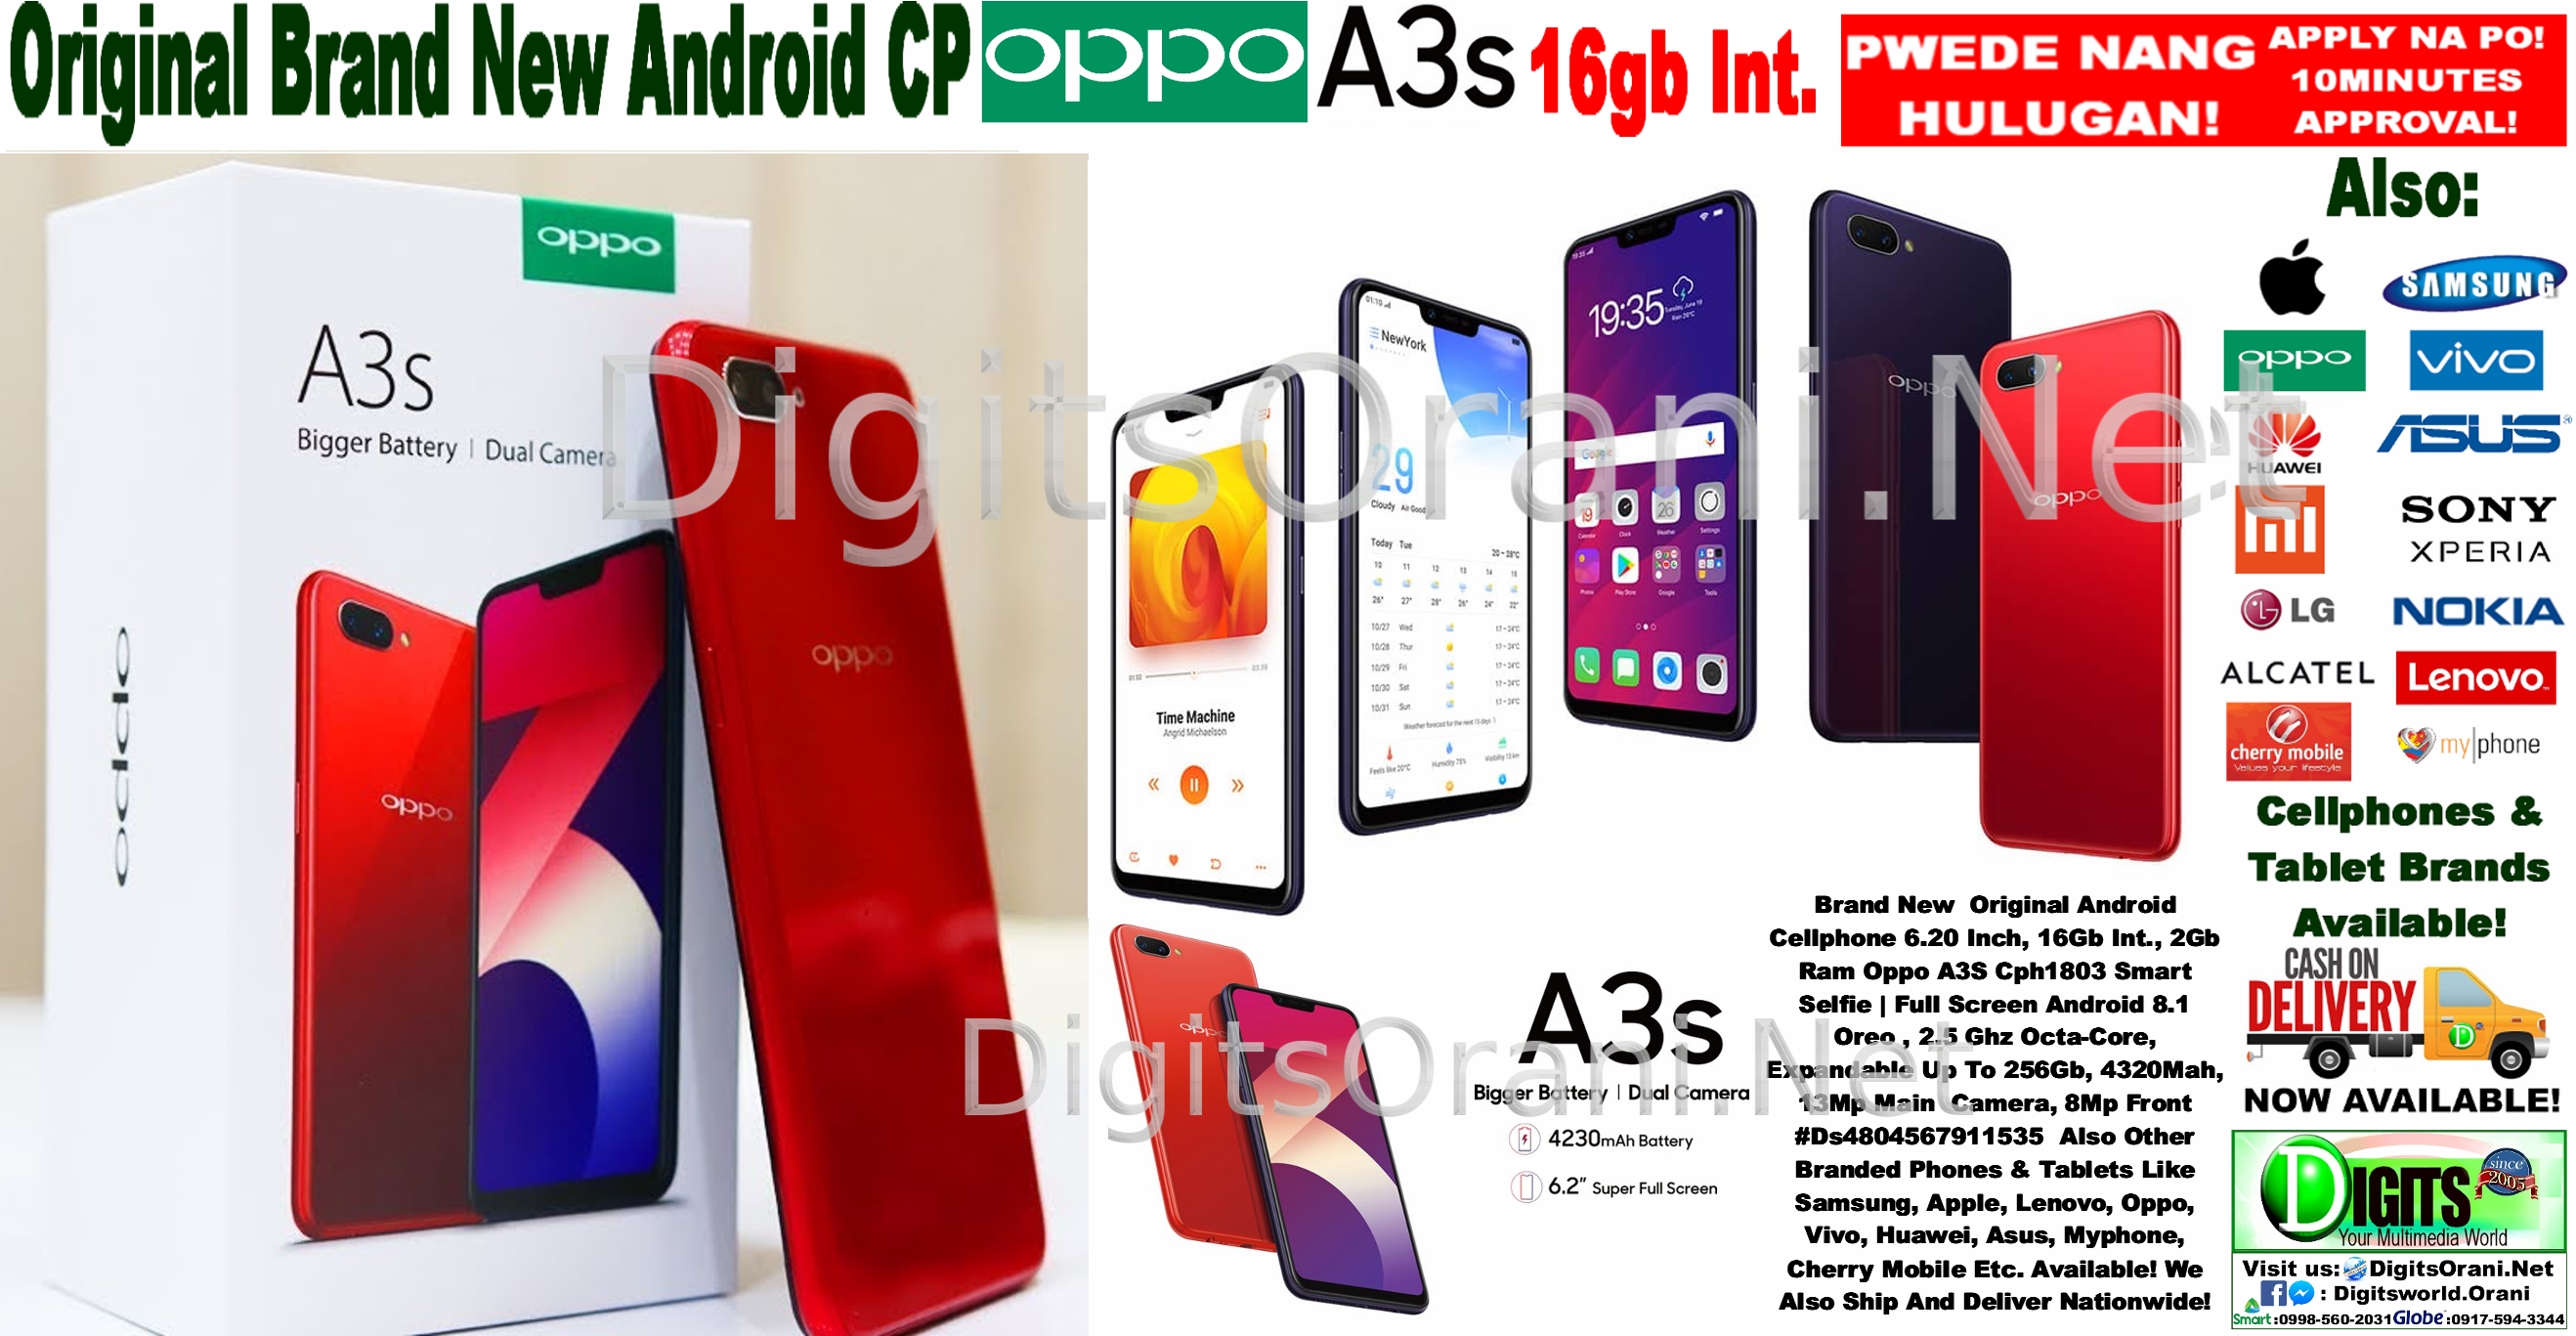 Original Android Cellphone 6 20 Inch, 16Gb Int , 2Gb Ram Oppo A3S Cph1803  Smart Selfie | Full Screen Android 8 1 Oreo , 2 5 Ghz Octa-Core, Expandable